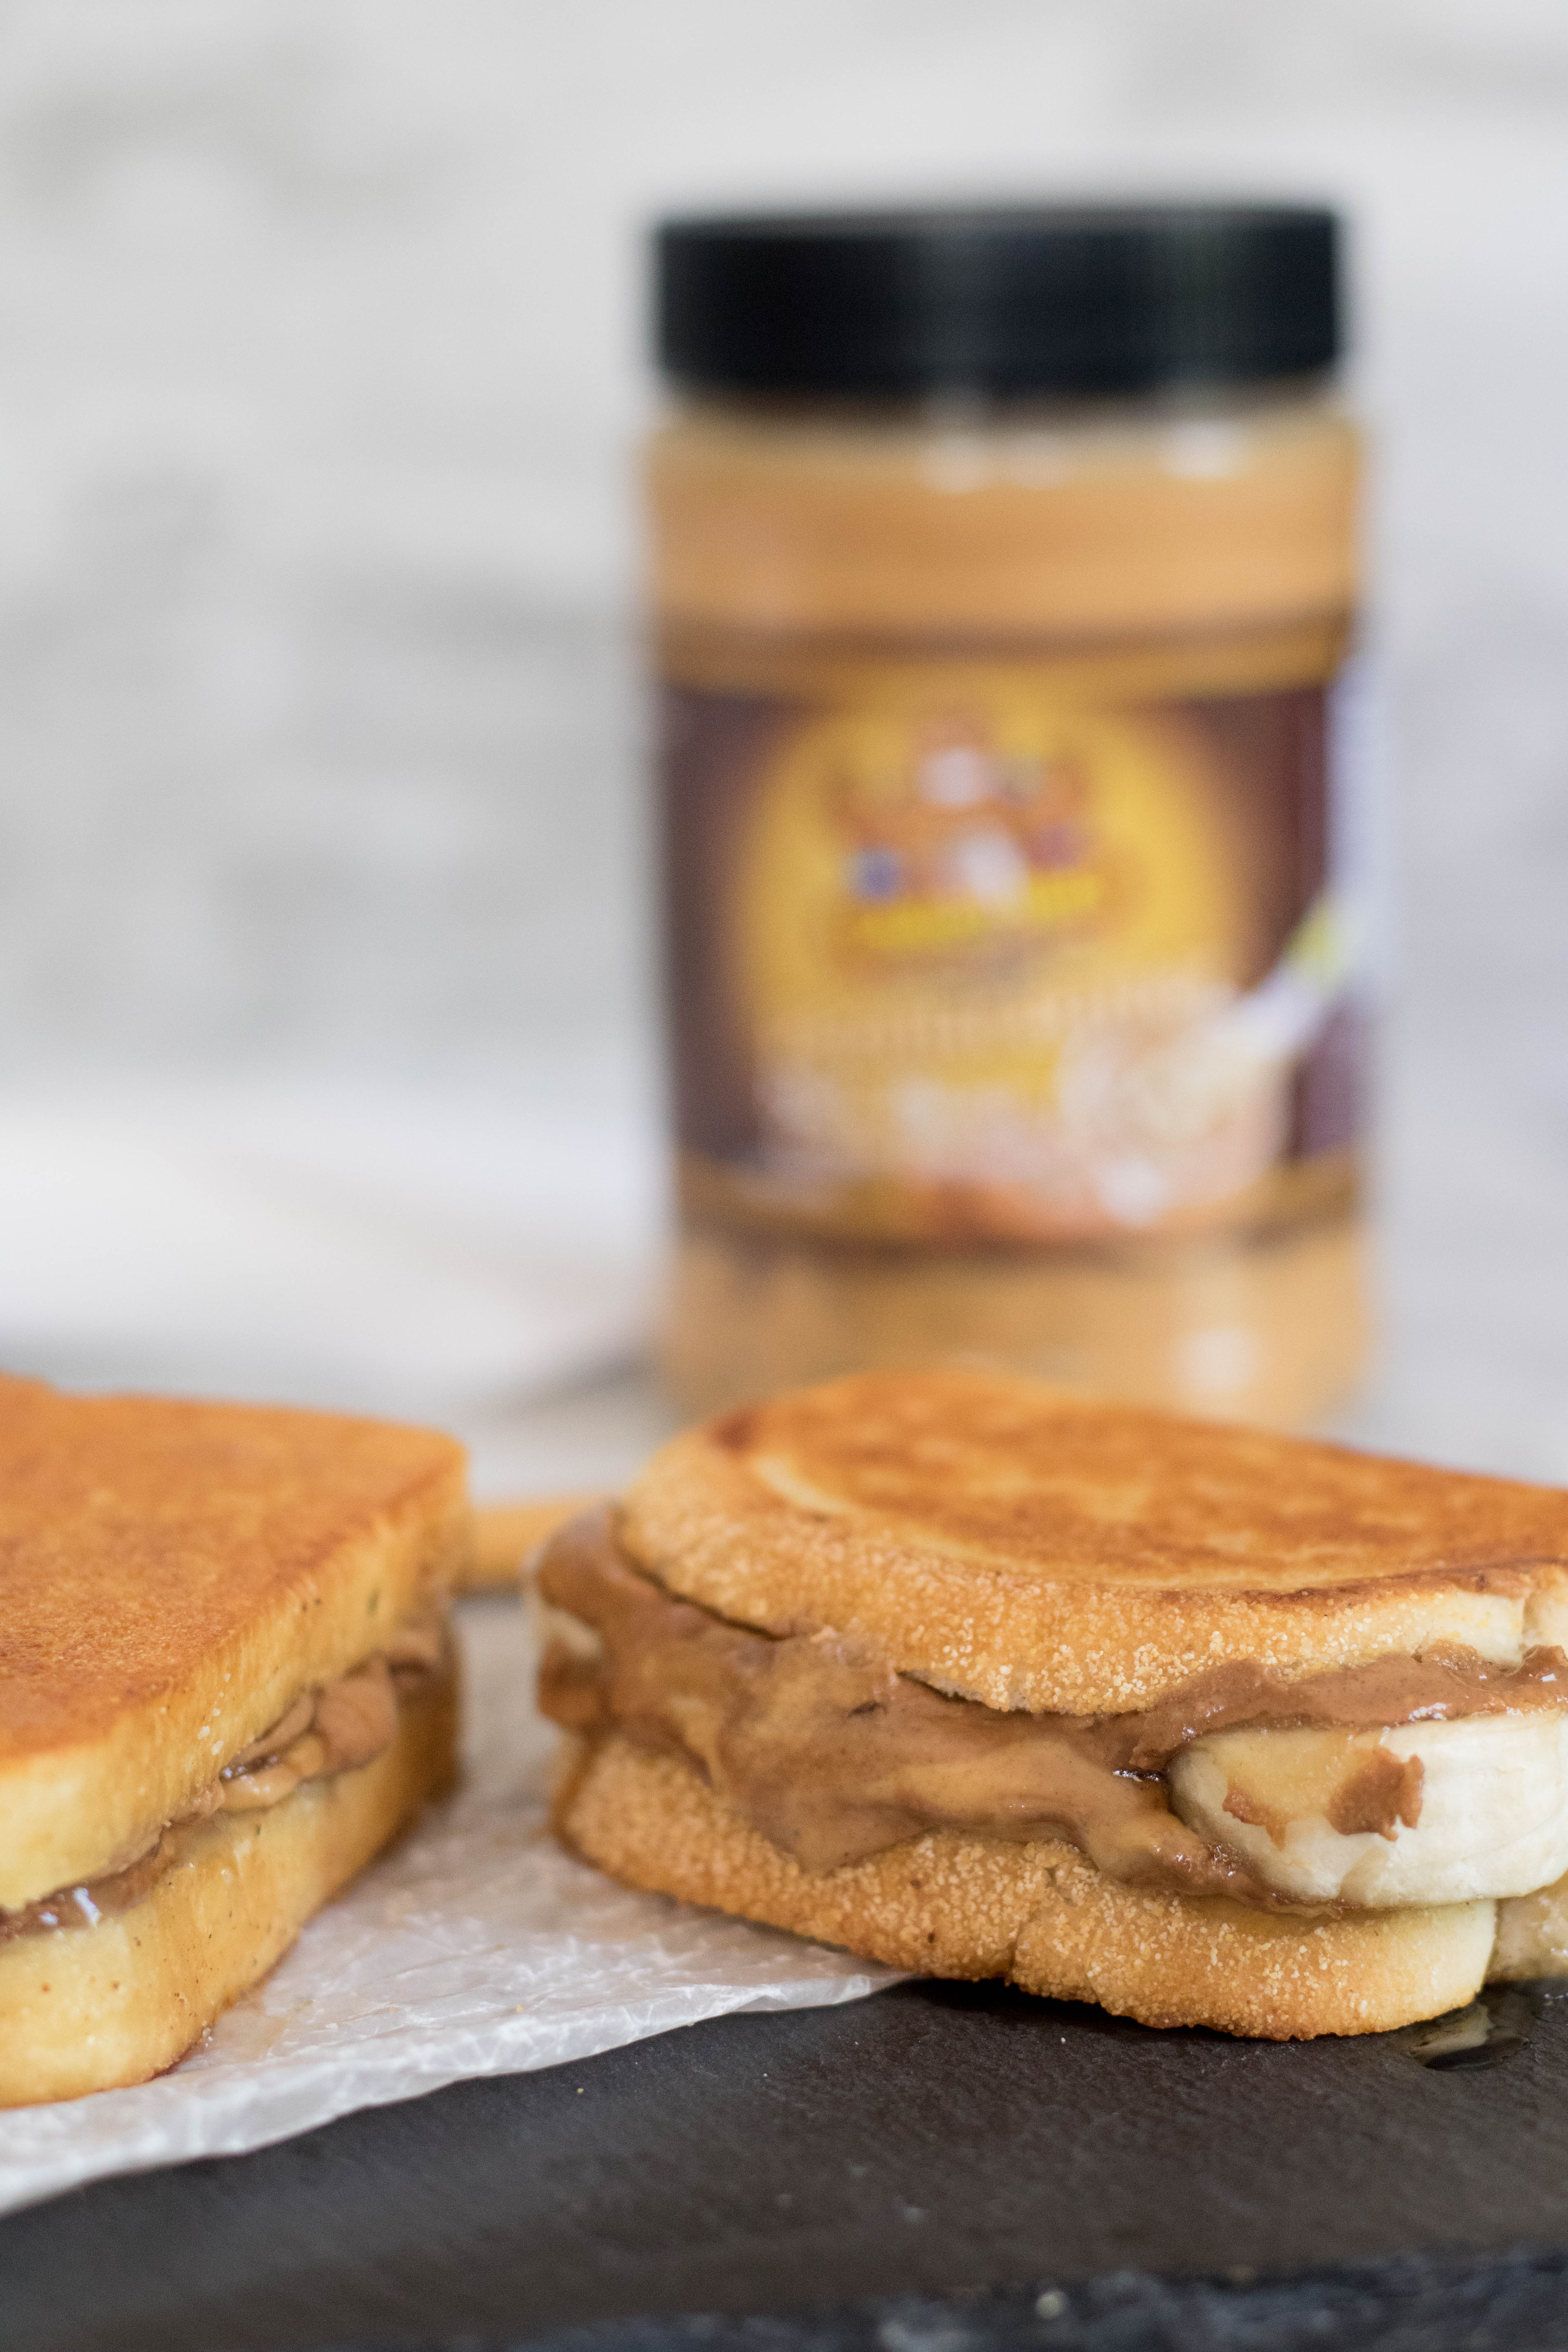 Peanut butter oozing out of the grilled banana Pb sandwich